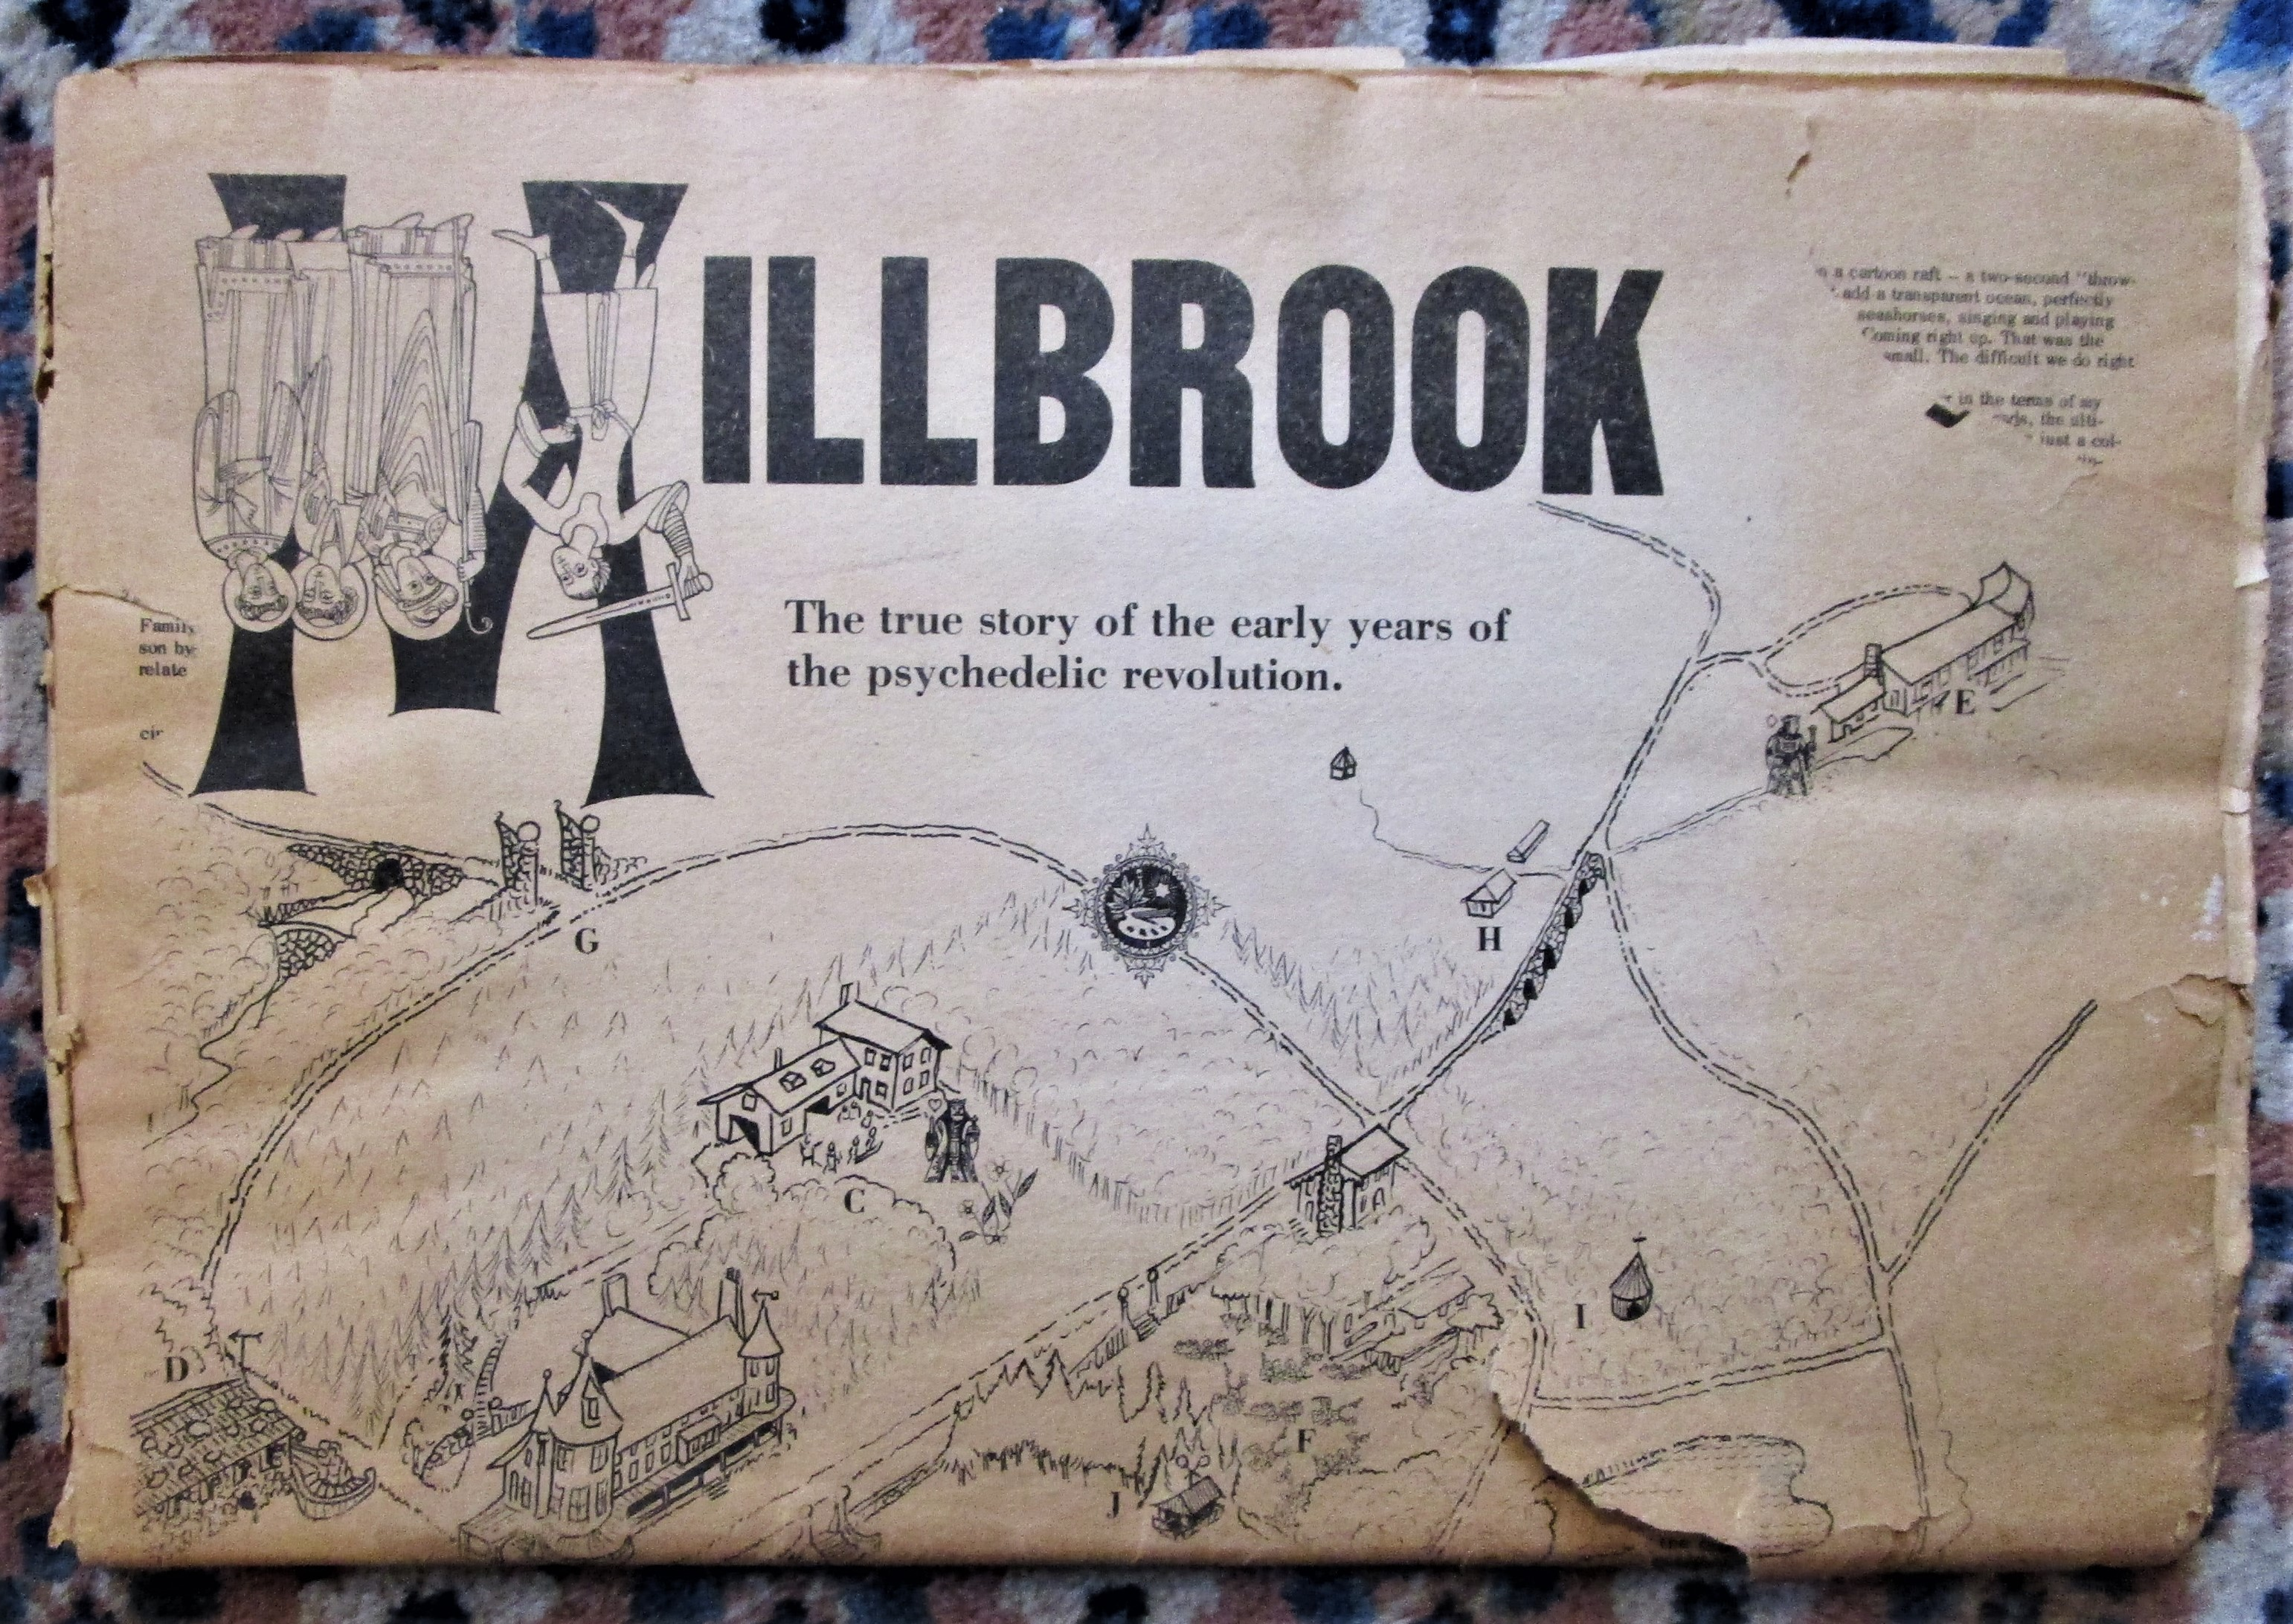 MILLBROOK: THE TRUE STORY OF THE EARLY YEARS OF THE PSYCHEDELIC REVOLUTION, by Art Kleps - 1967 [1st Ed]